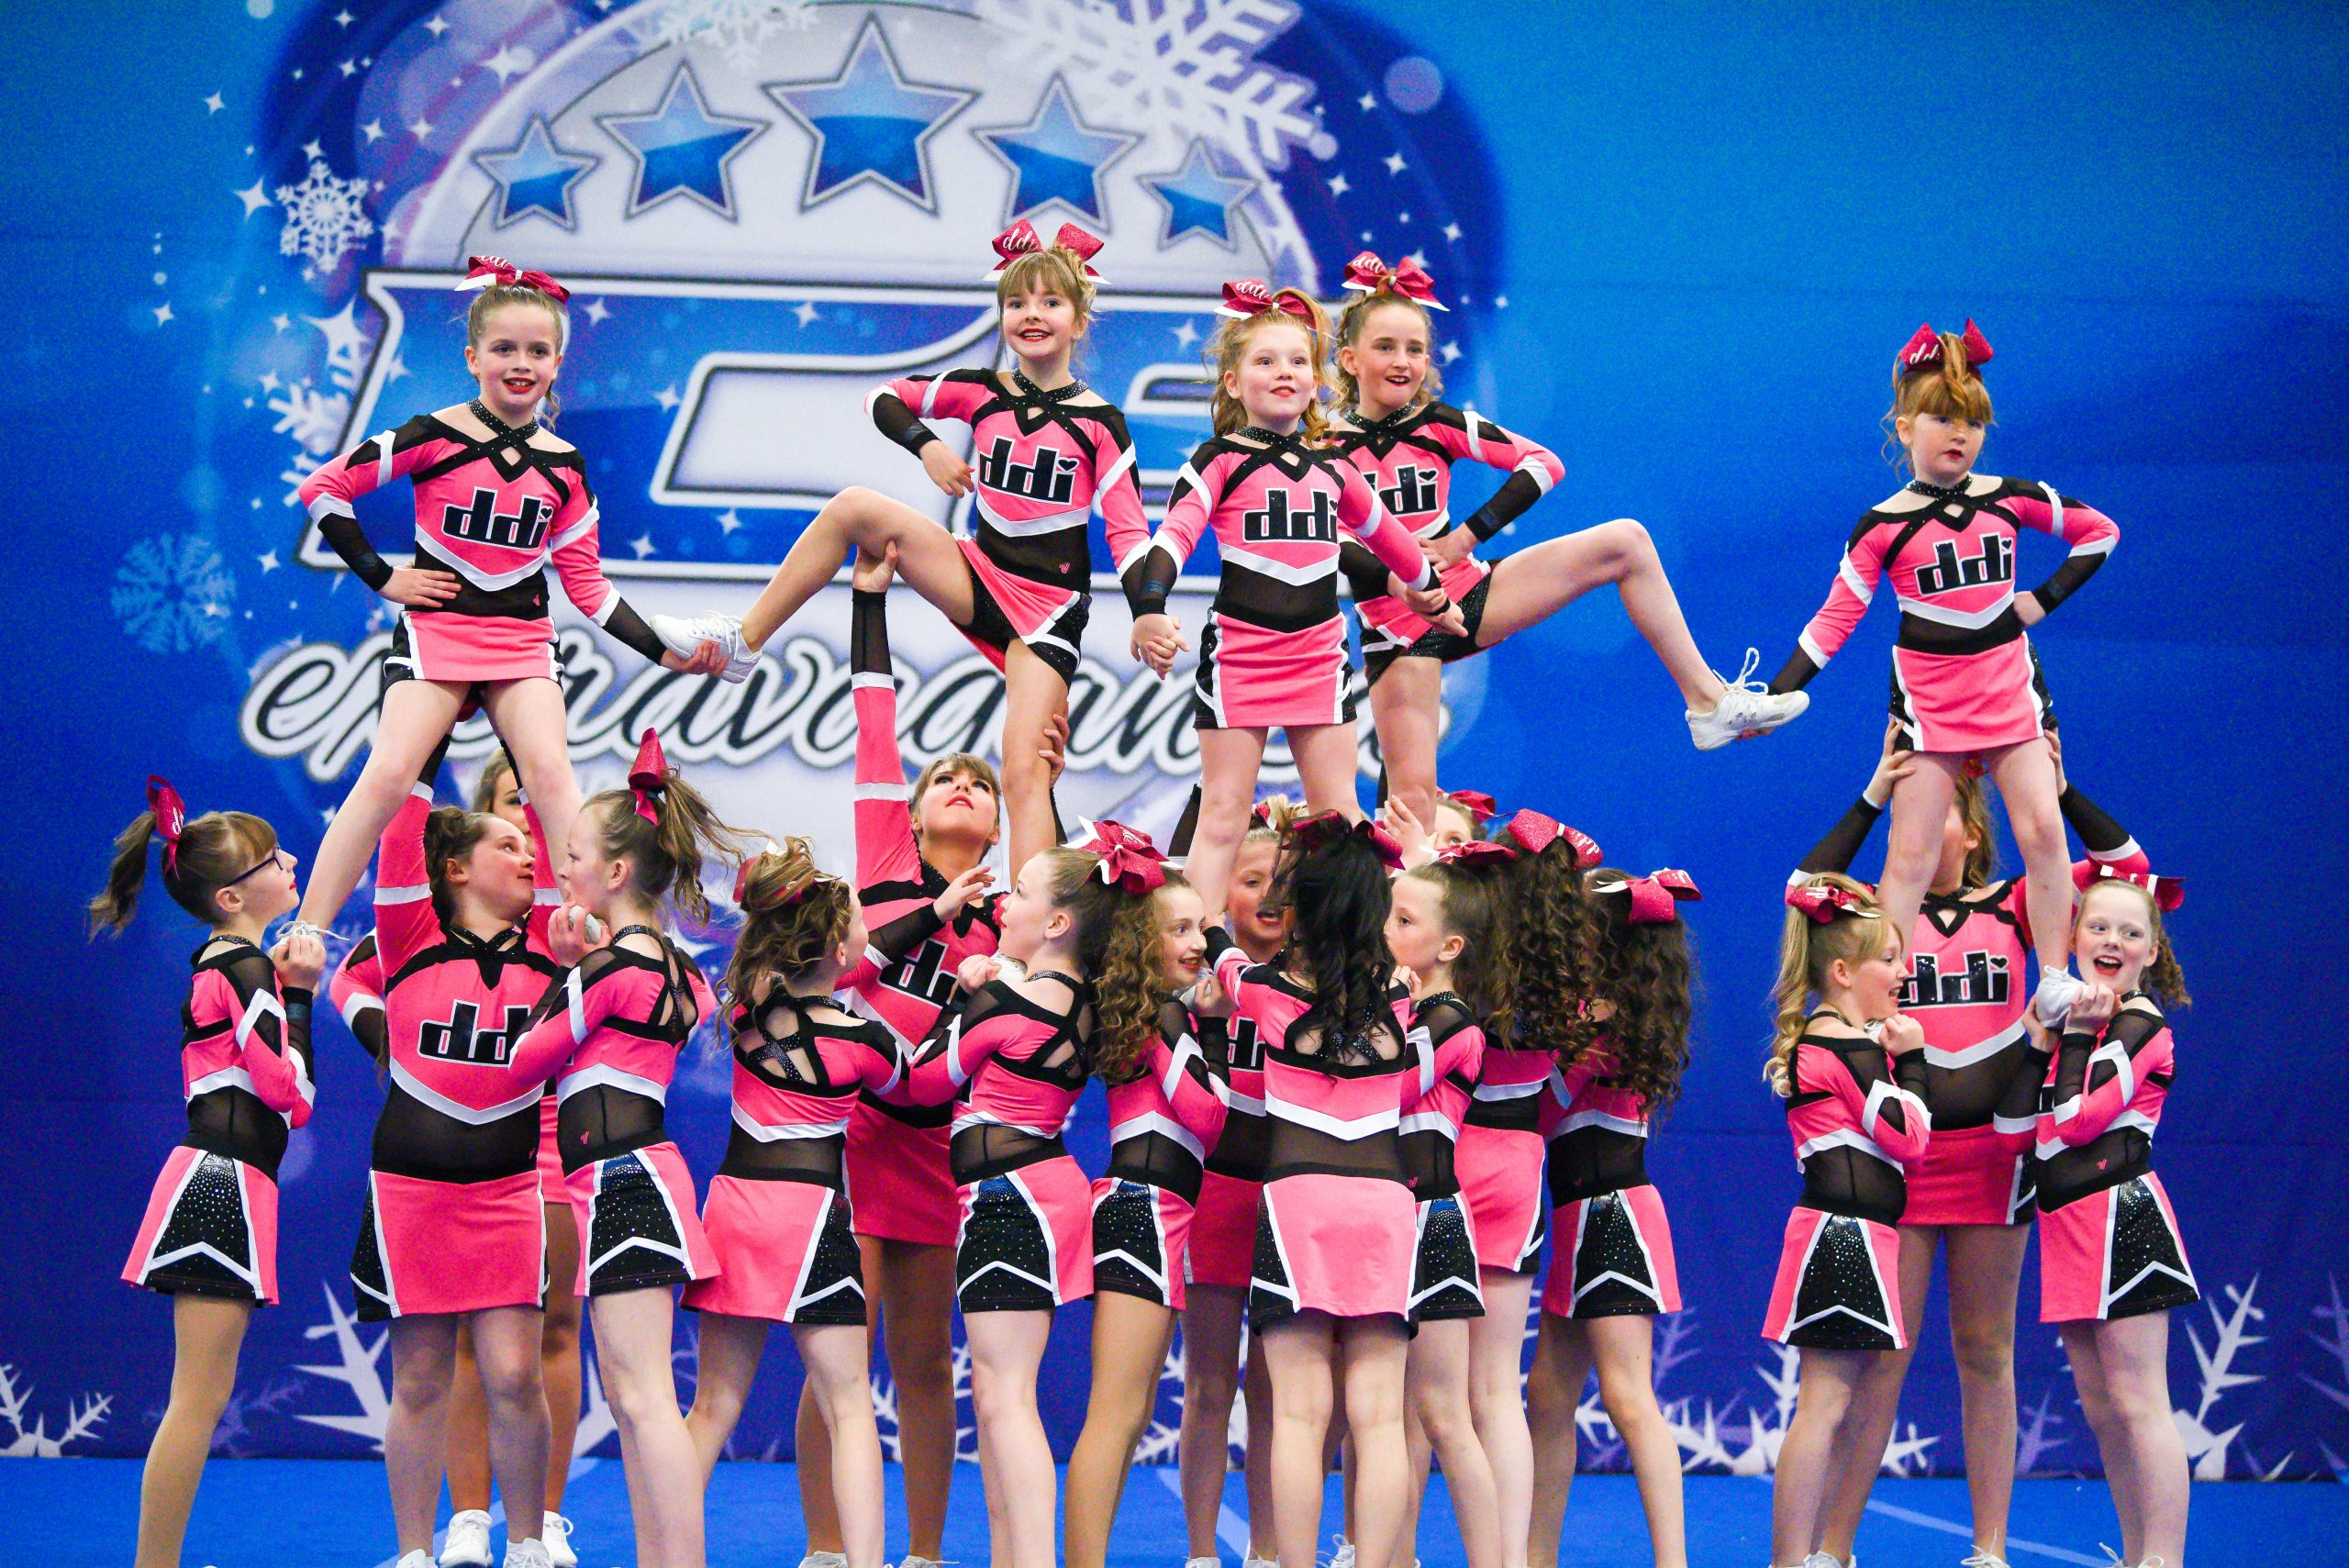 A cheer team dressed in pink and black perform a pyramid at an ICE Extravaganza competition